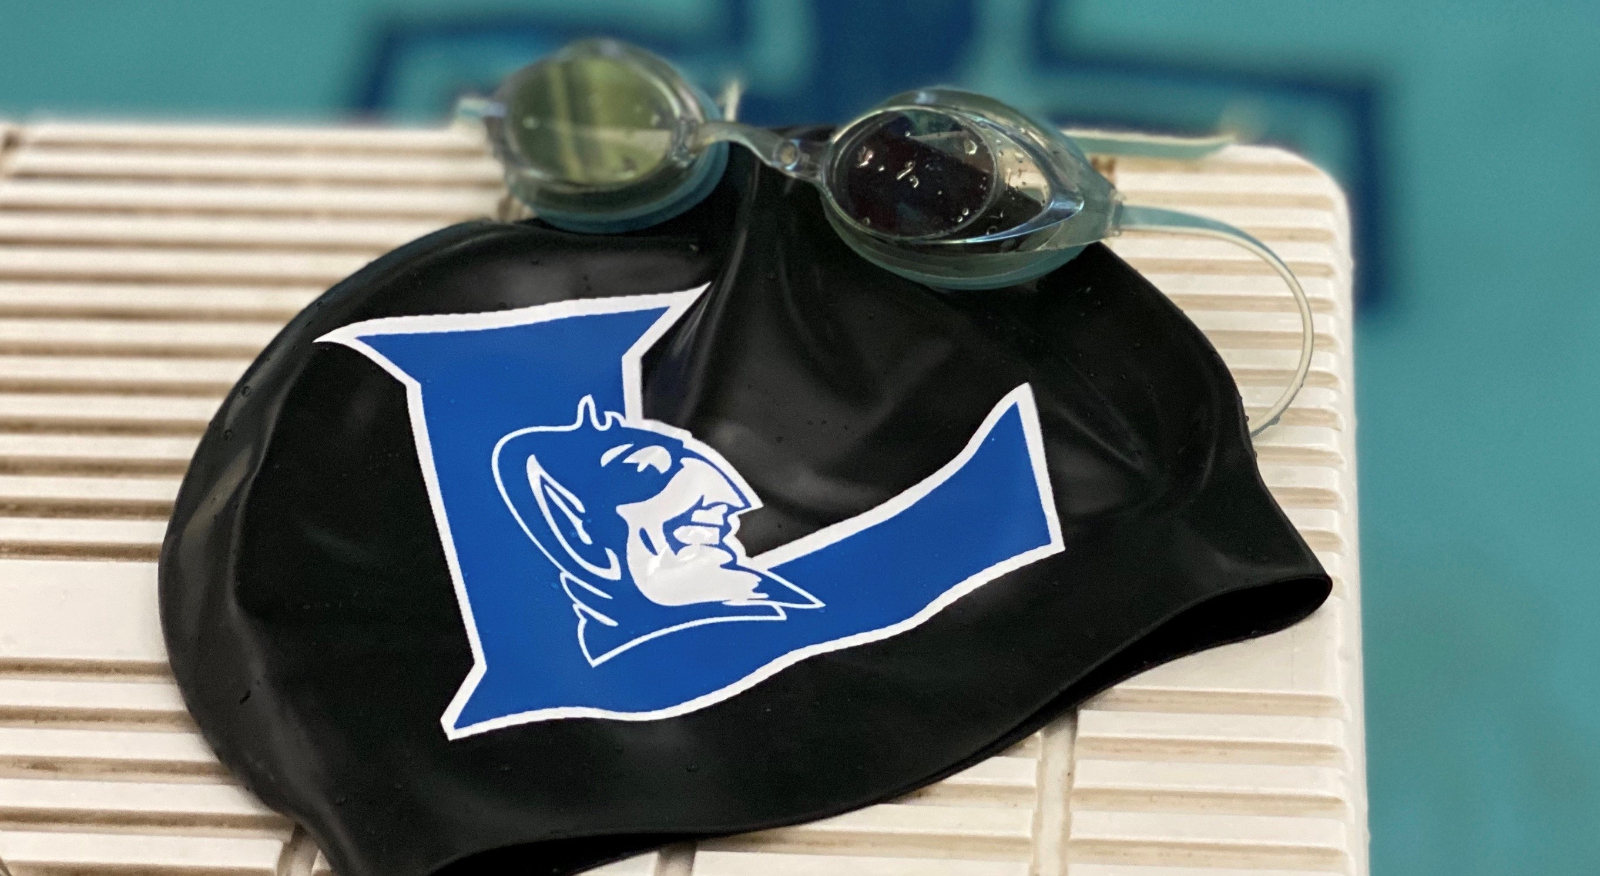 Lebanon High School Swim Team's first meet of the season is this Friday, January 15th at the Jimmy Floyd Center in Lebanon